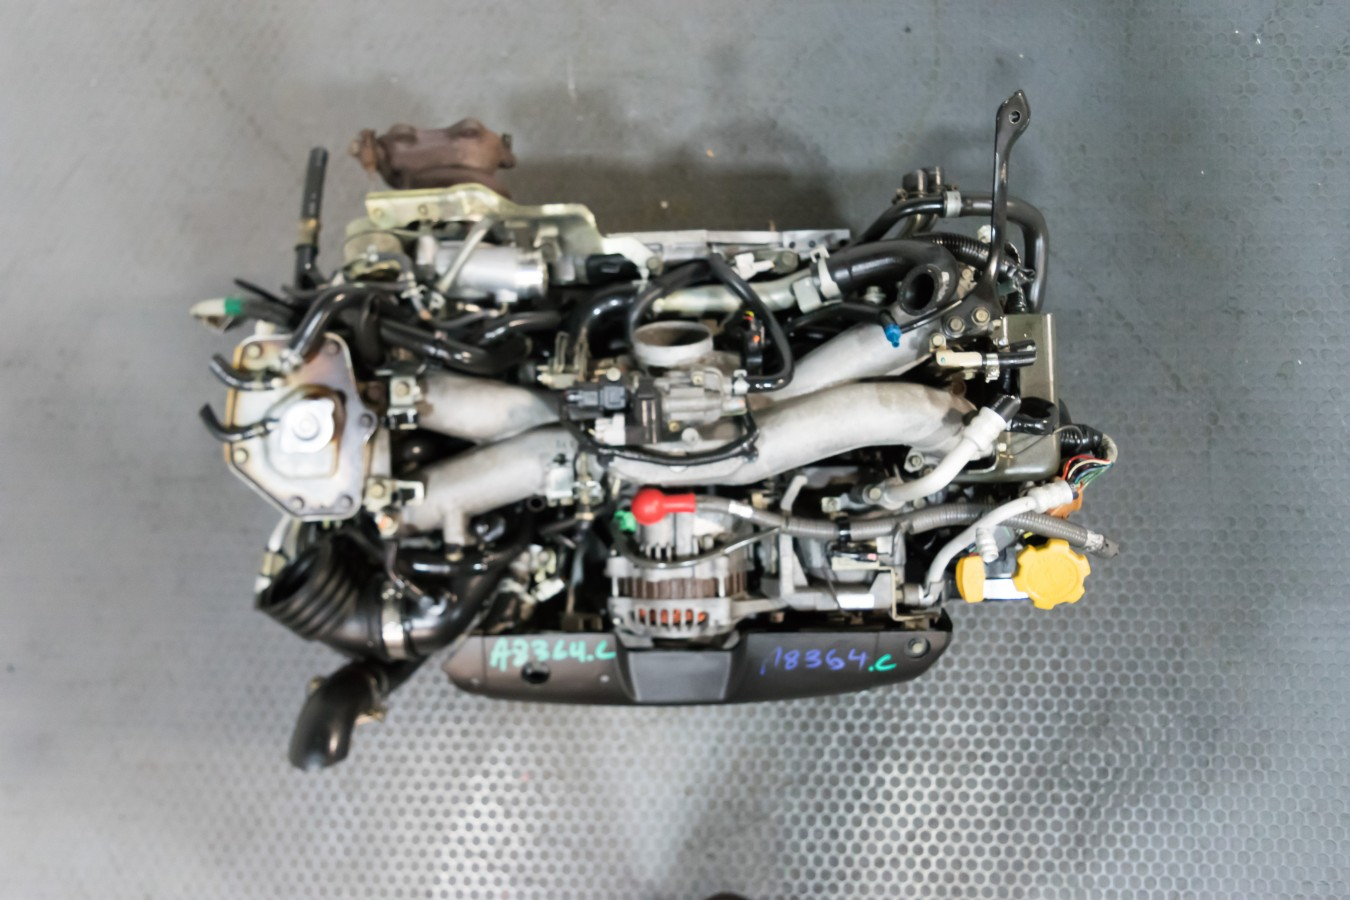 Low Miles Compression Tested EJ205 Engine with AVCS and TGV delete option  available for sale